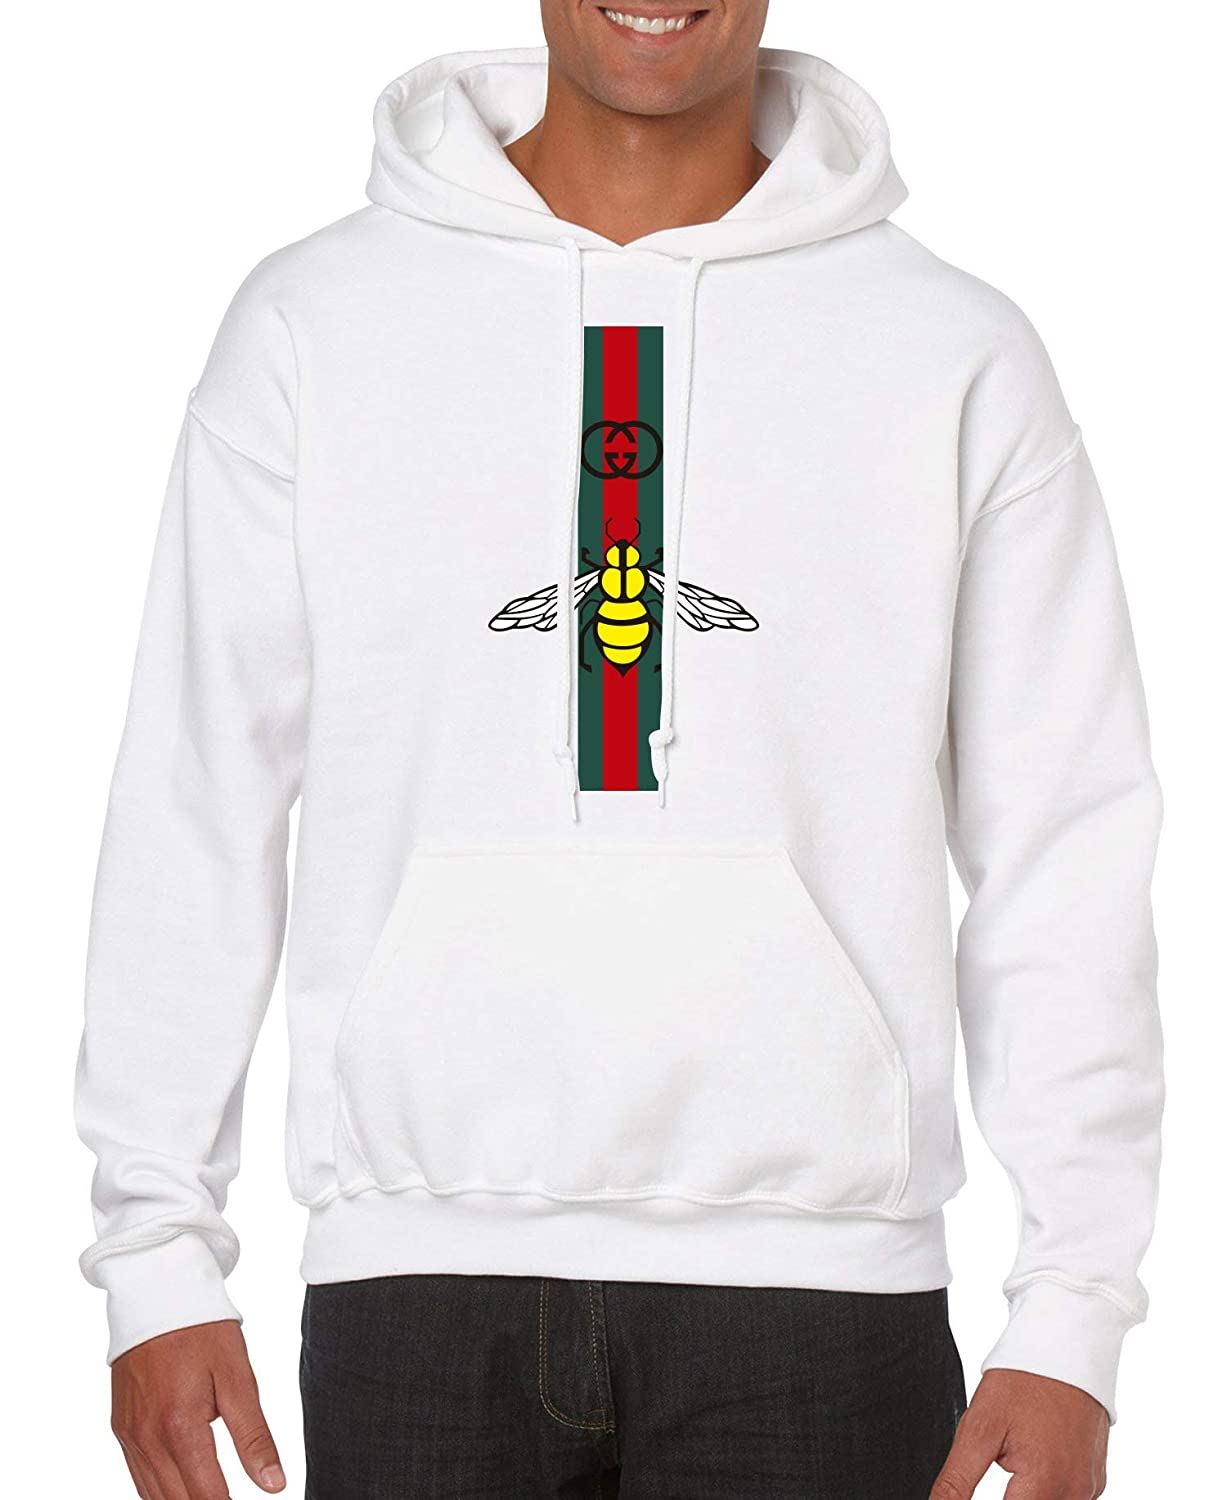 Bee Animal Print Gucci Style , Hoodie , Sweater Unisex for Any Occasion  (Y04) White